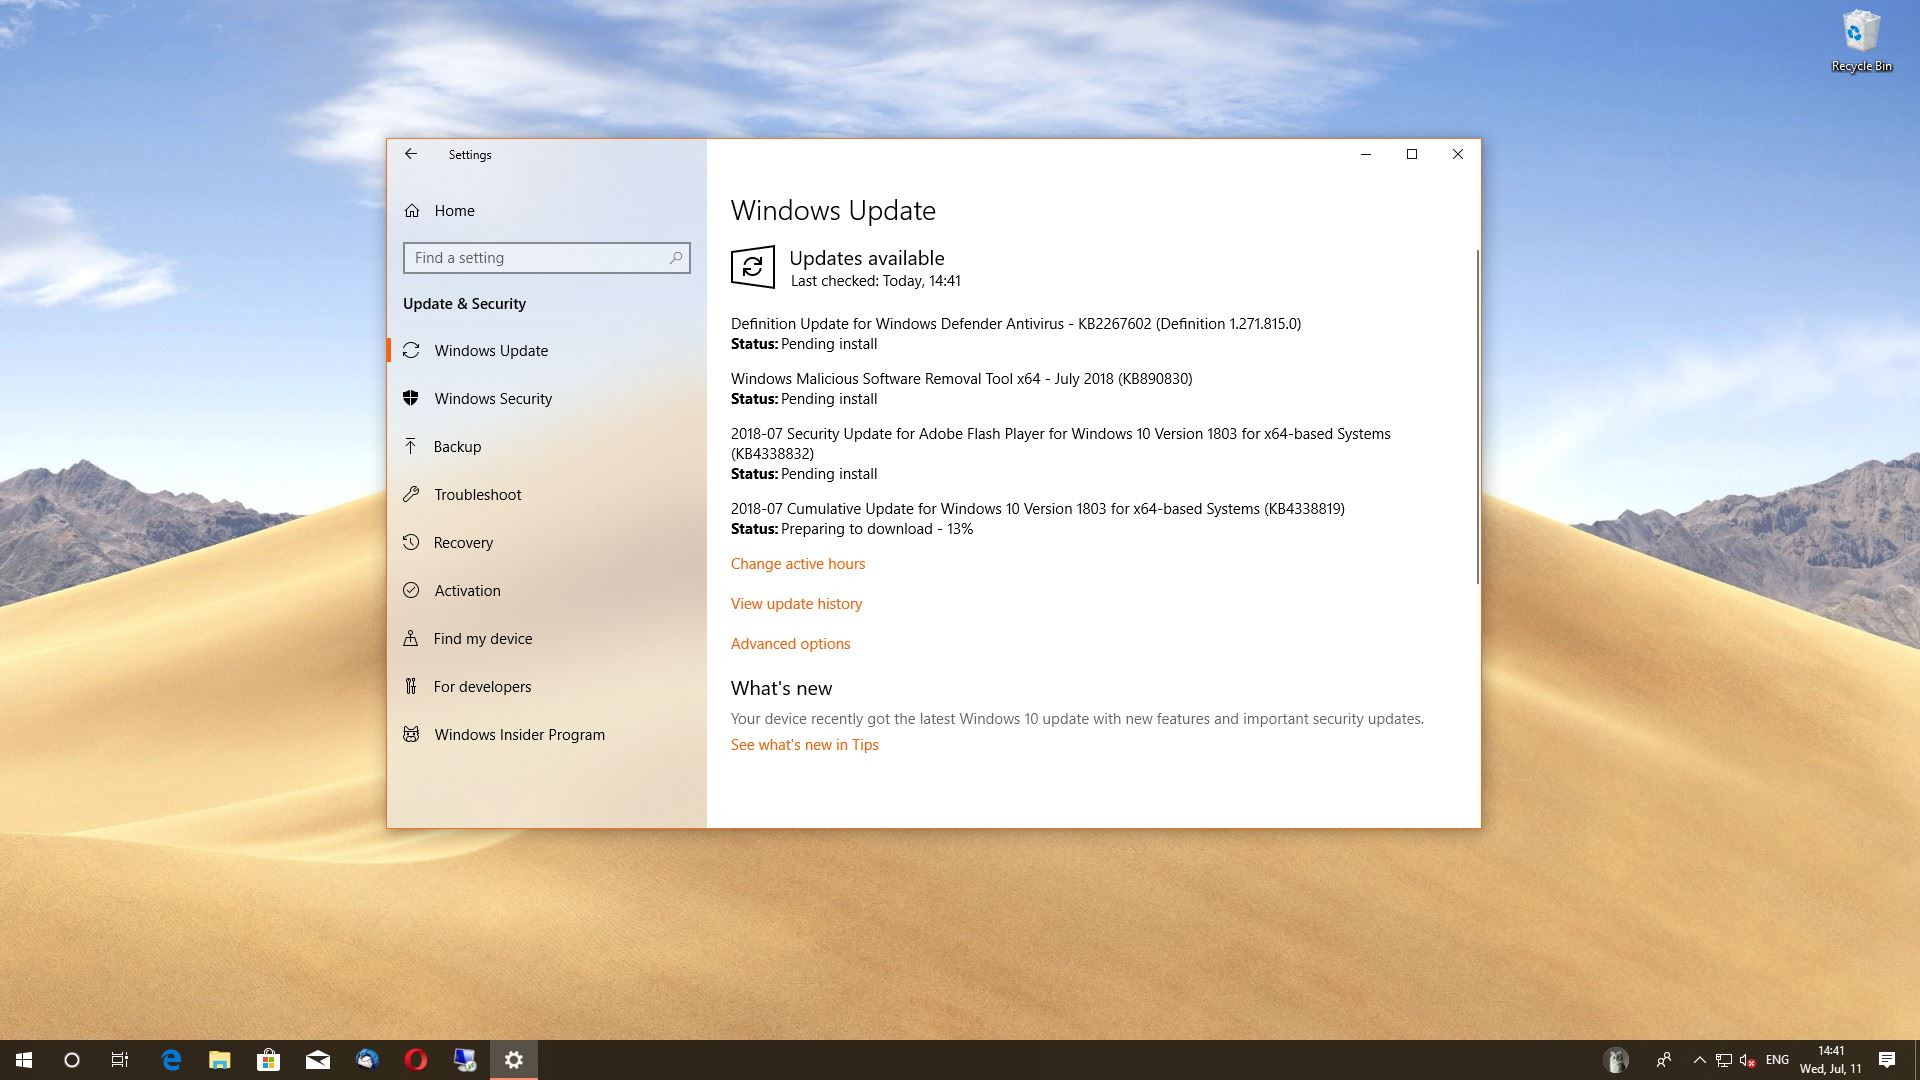 How To Find Out If A Windows 10 Cumulative Update Installed Correctly